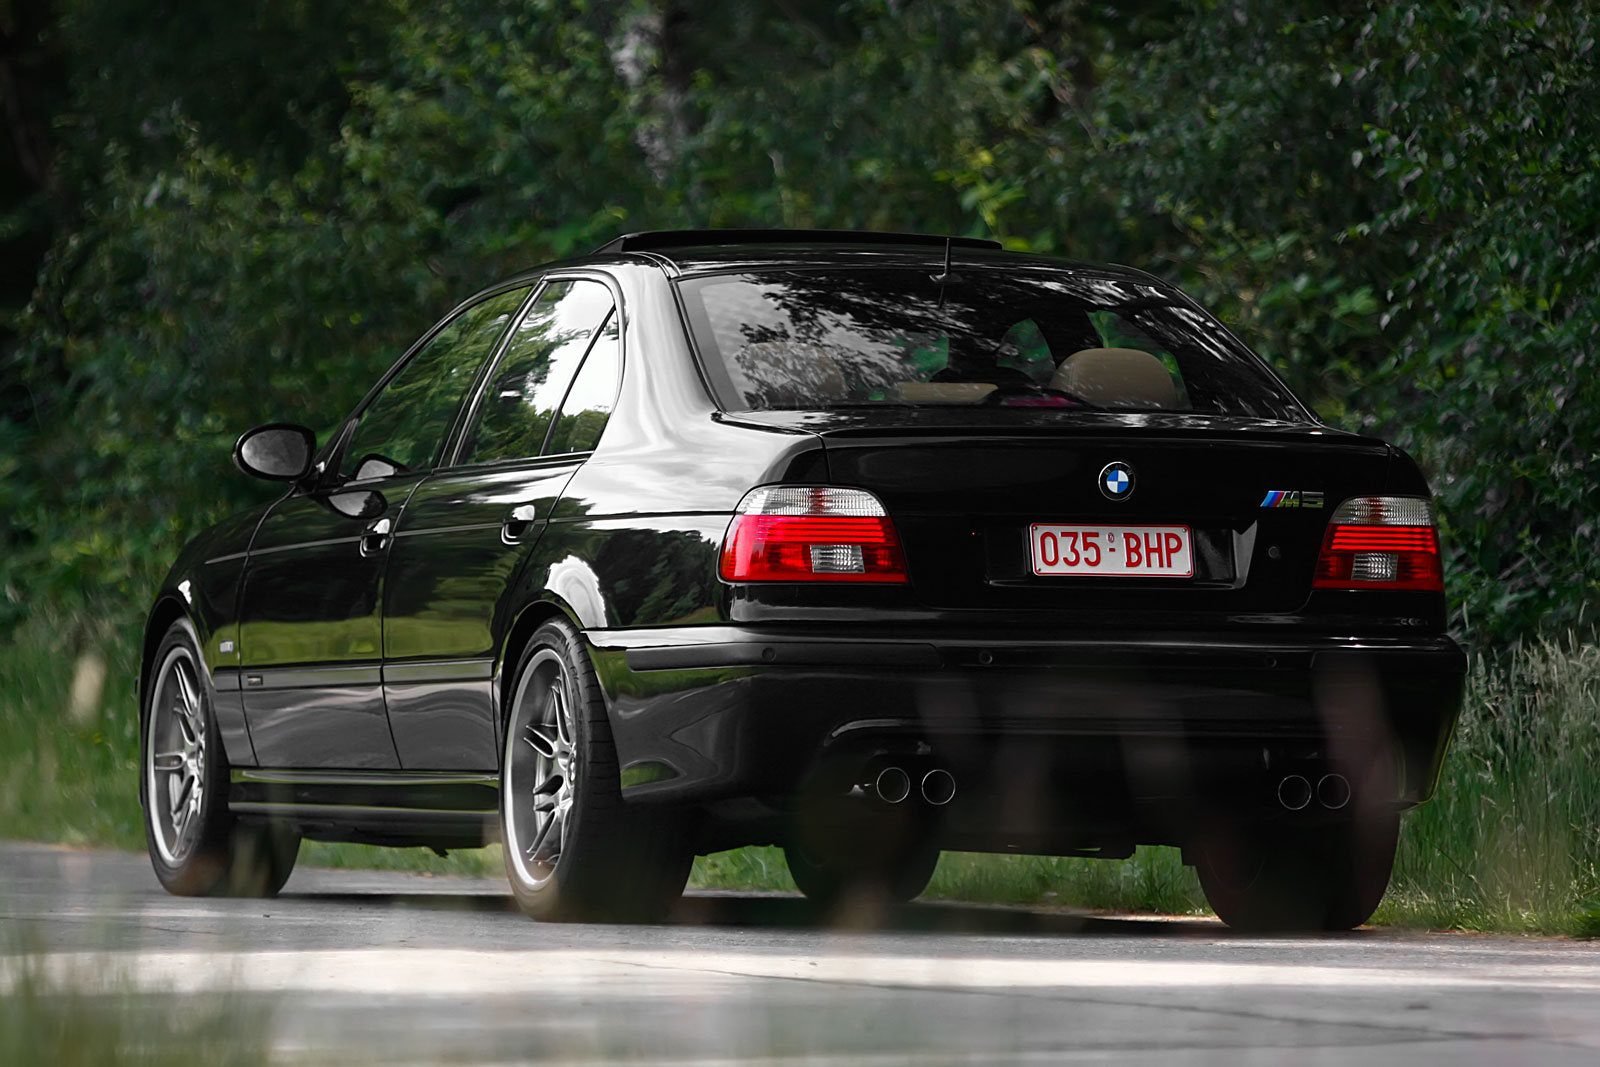 1999 Bmw M5 (e39) – pictures, information and specs - Auto-Database.com